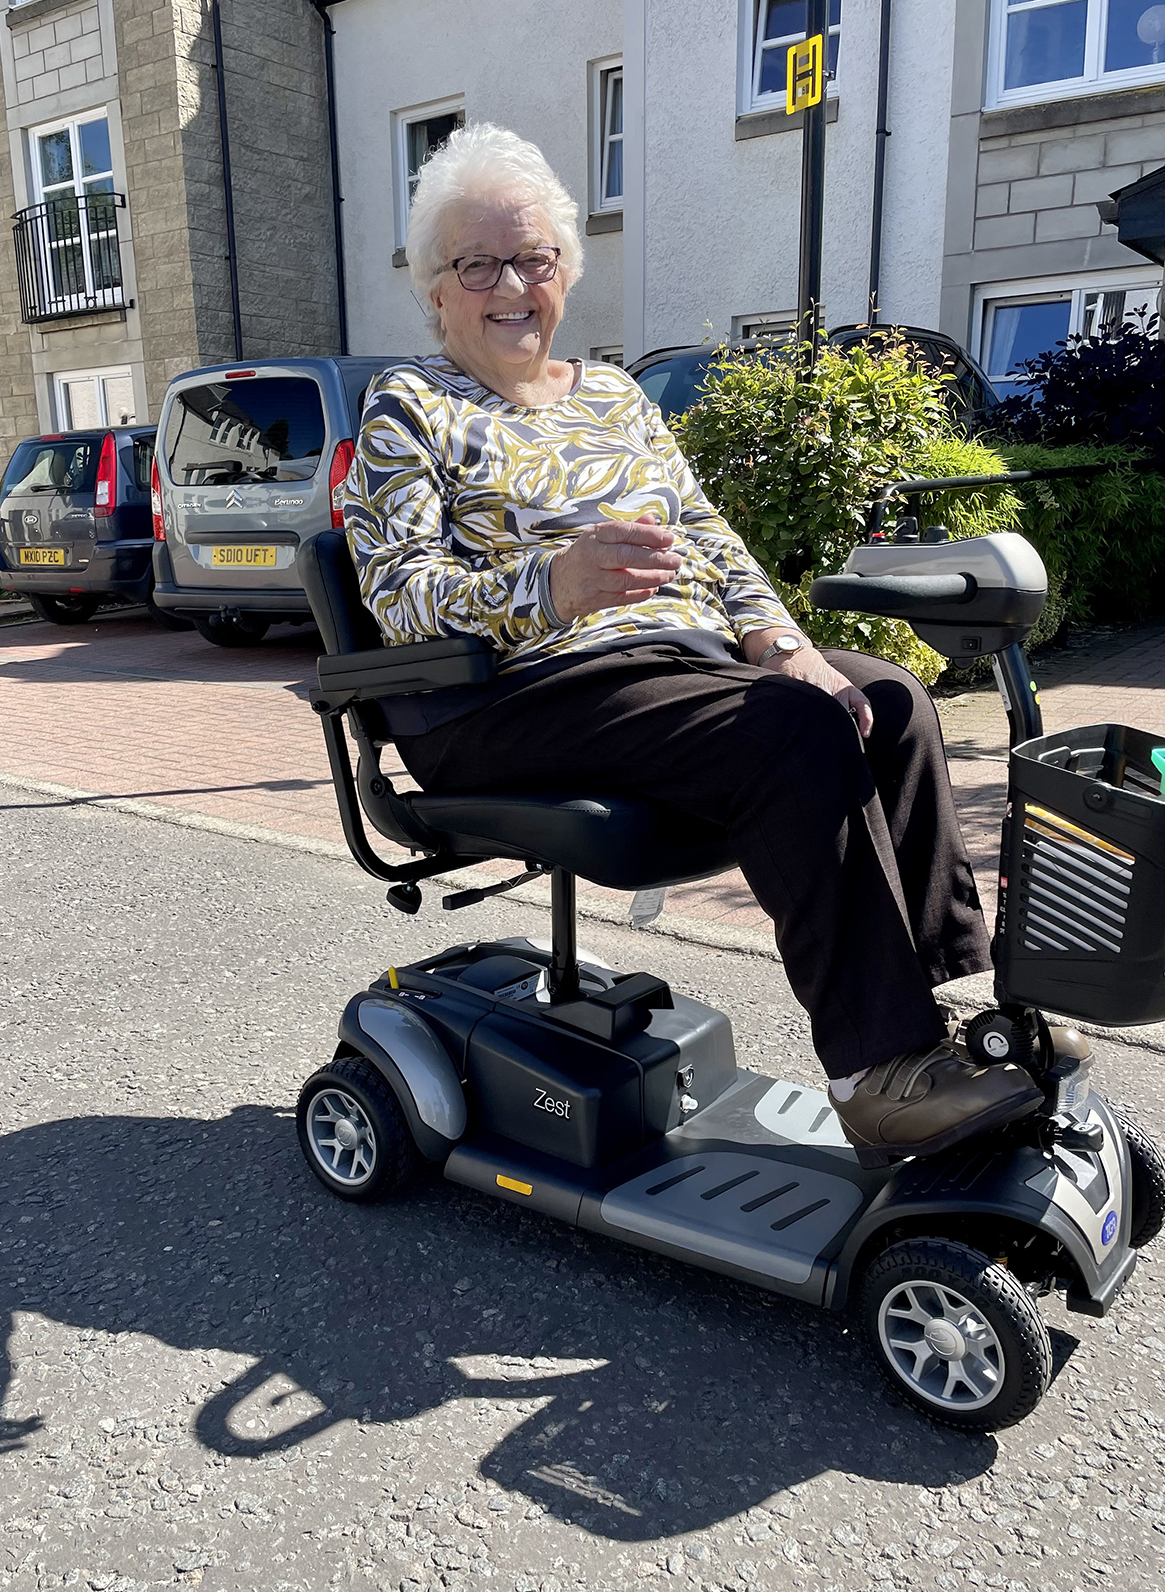 Margaret Simpson from Peebles proudly driving her new Zest mobility scooter from TGA.